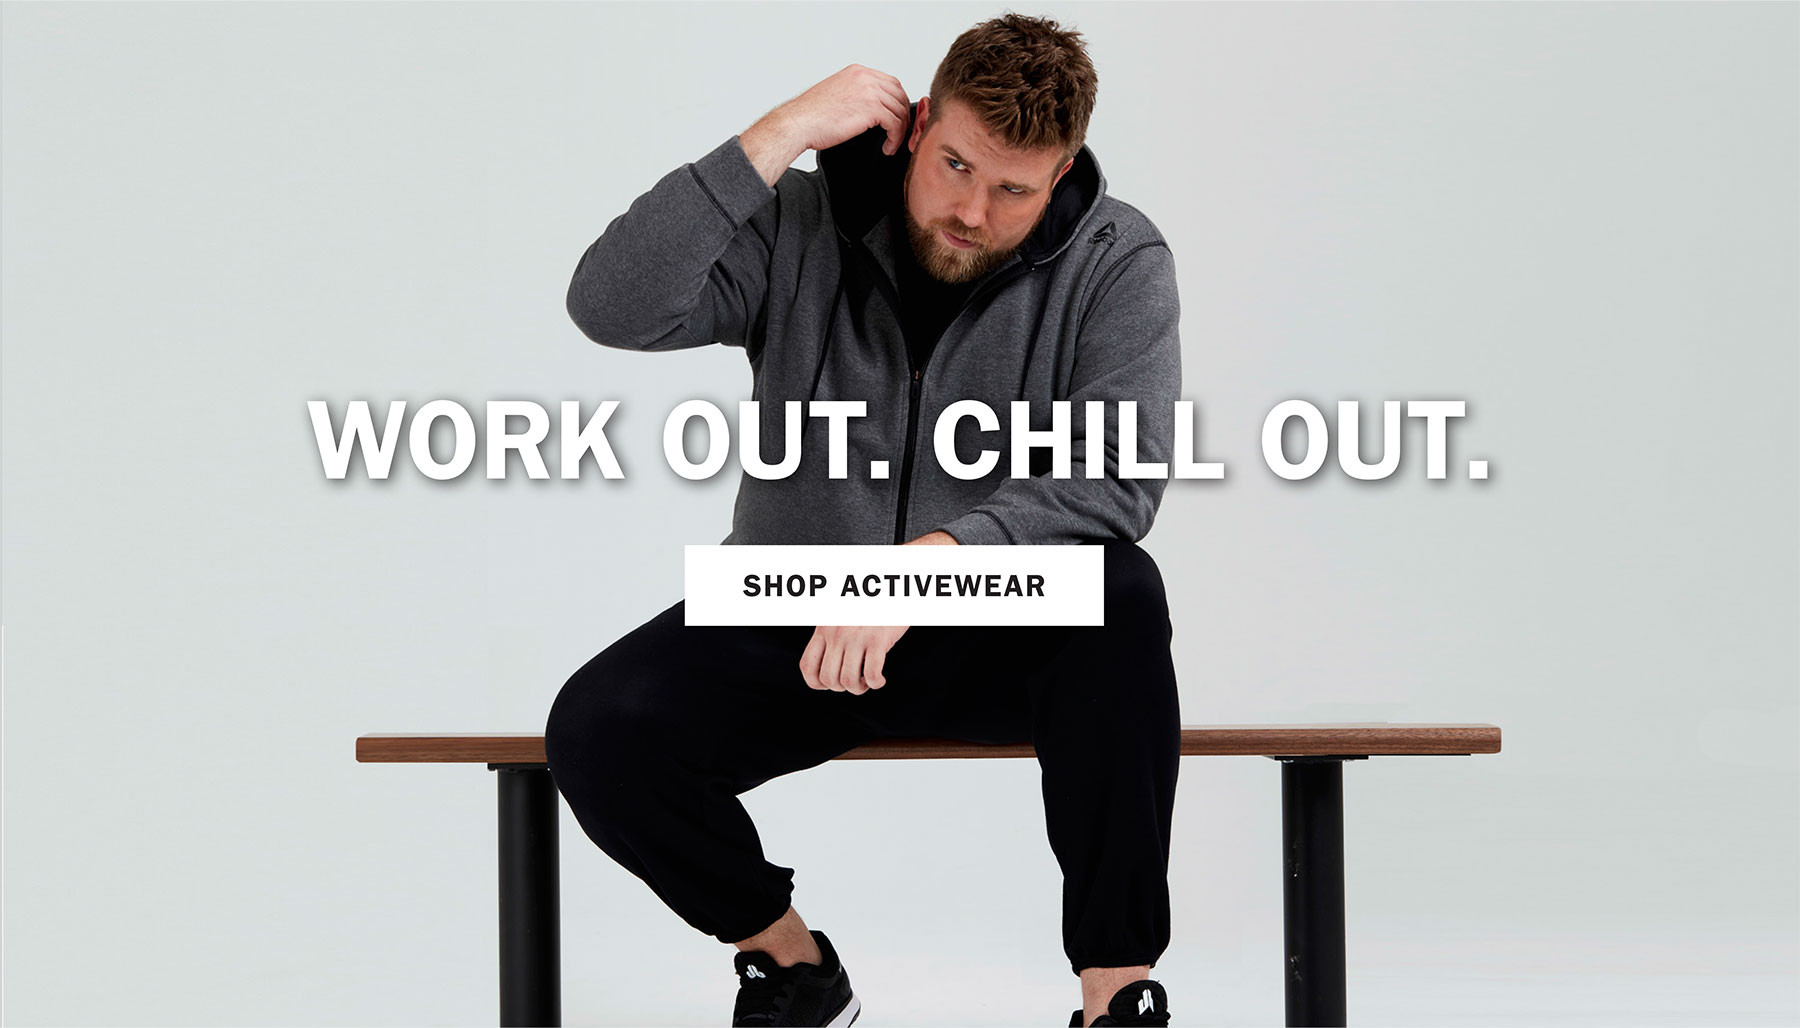 WORK OUT. CHILL OUT. | ACTIVEWEAR